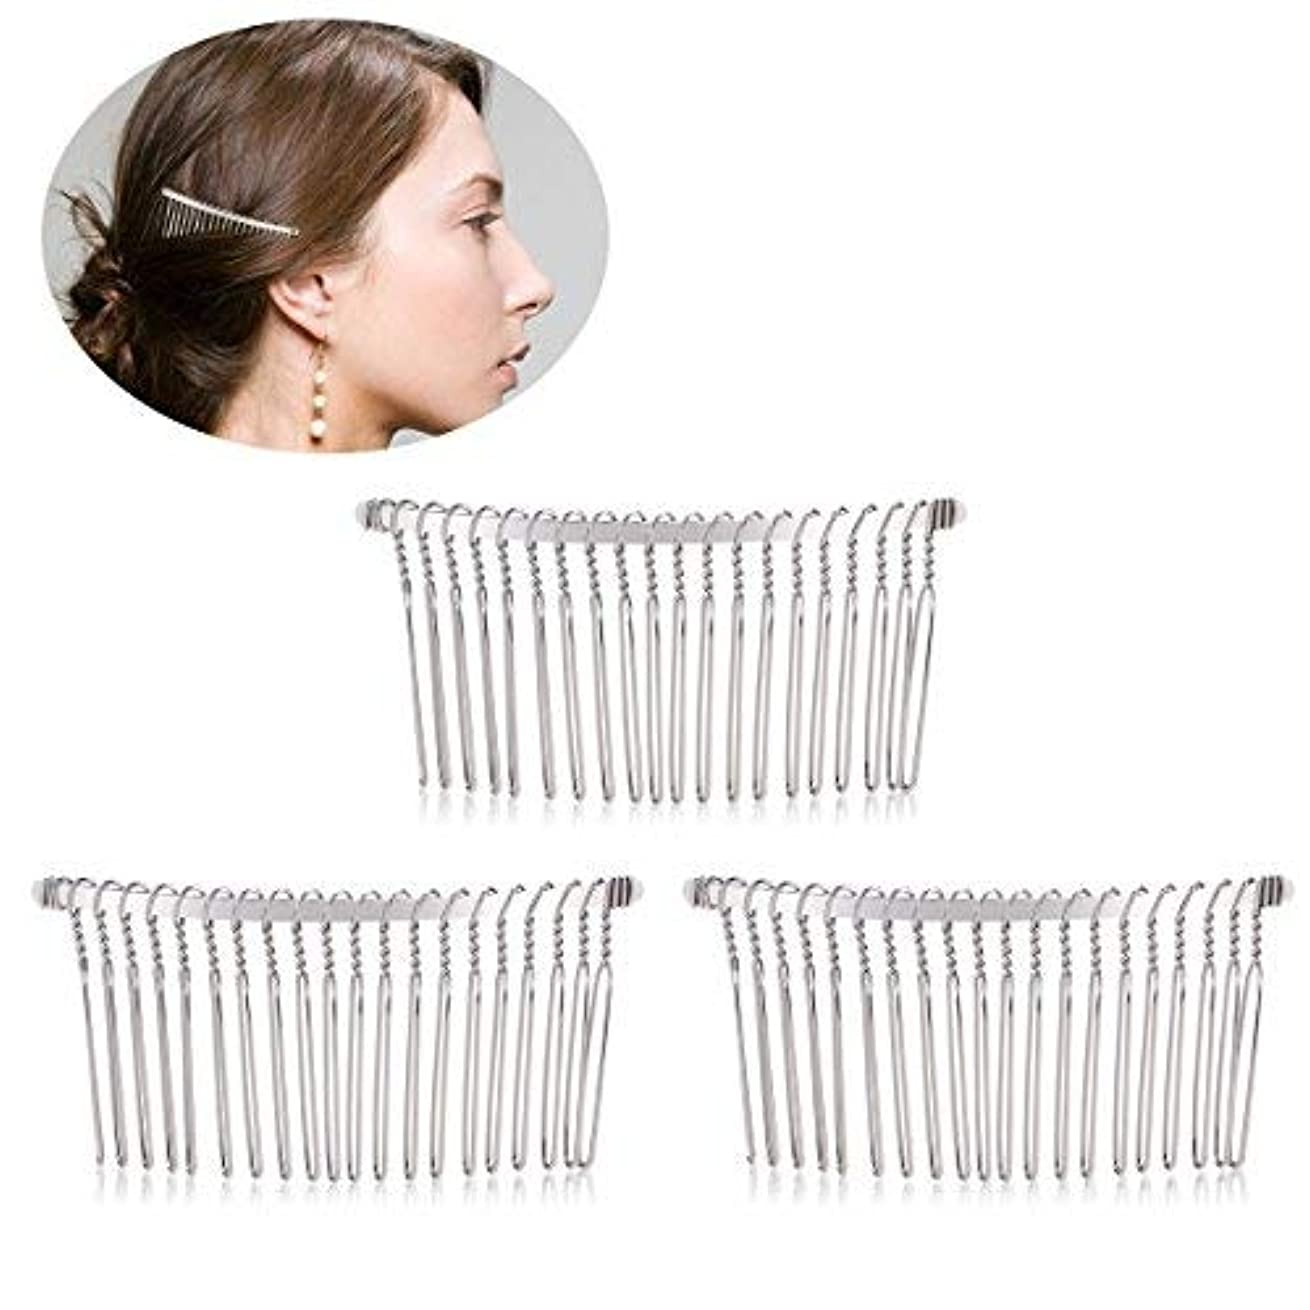 Pixnor 3pcs 7.8cm 20 Teeth Fancy DIY Metal Wire Hair Clip Combs Bridal Wedding Veil Combs (Silver) [並行輸入品]